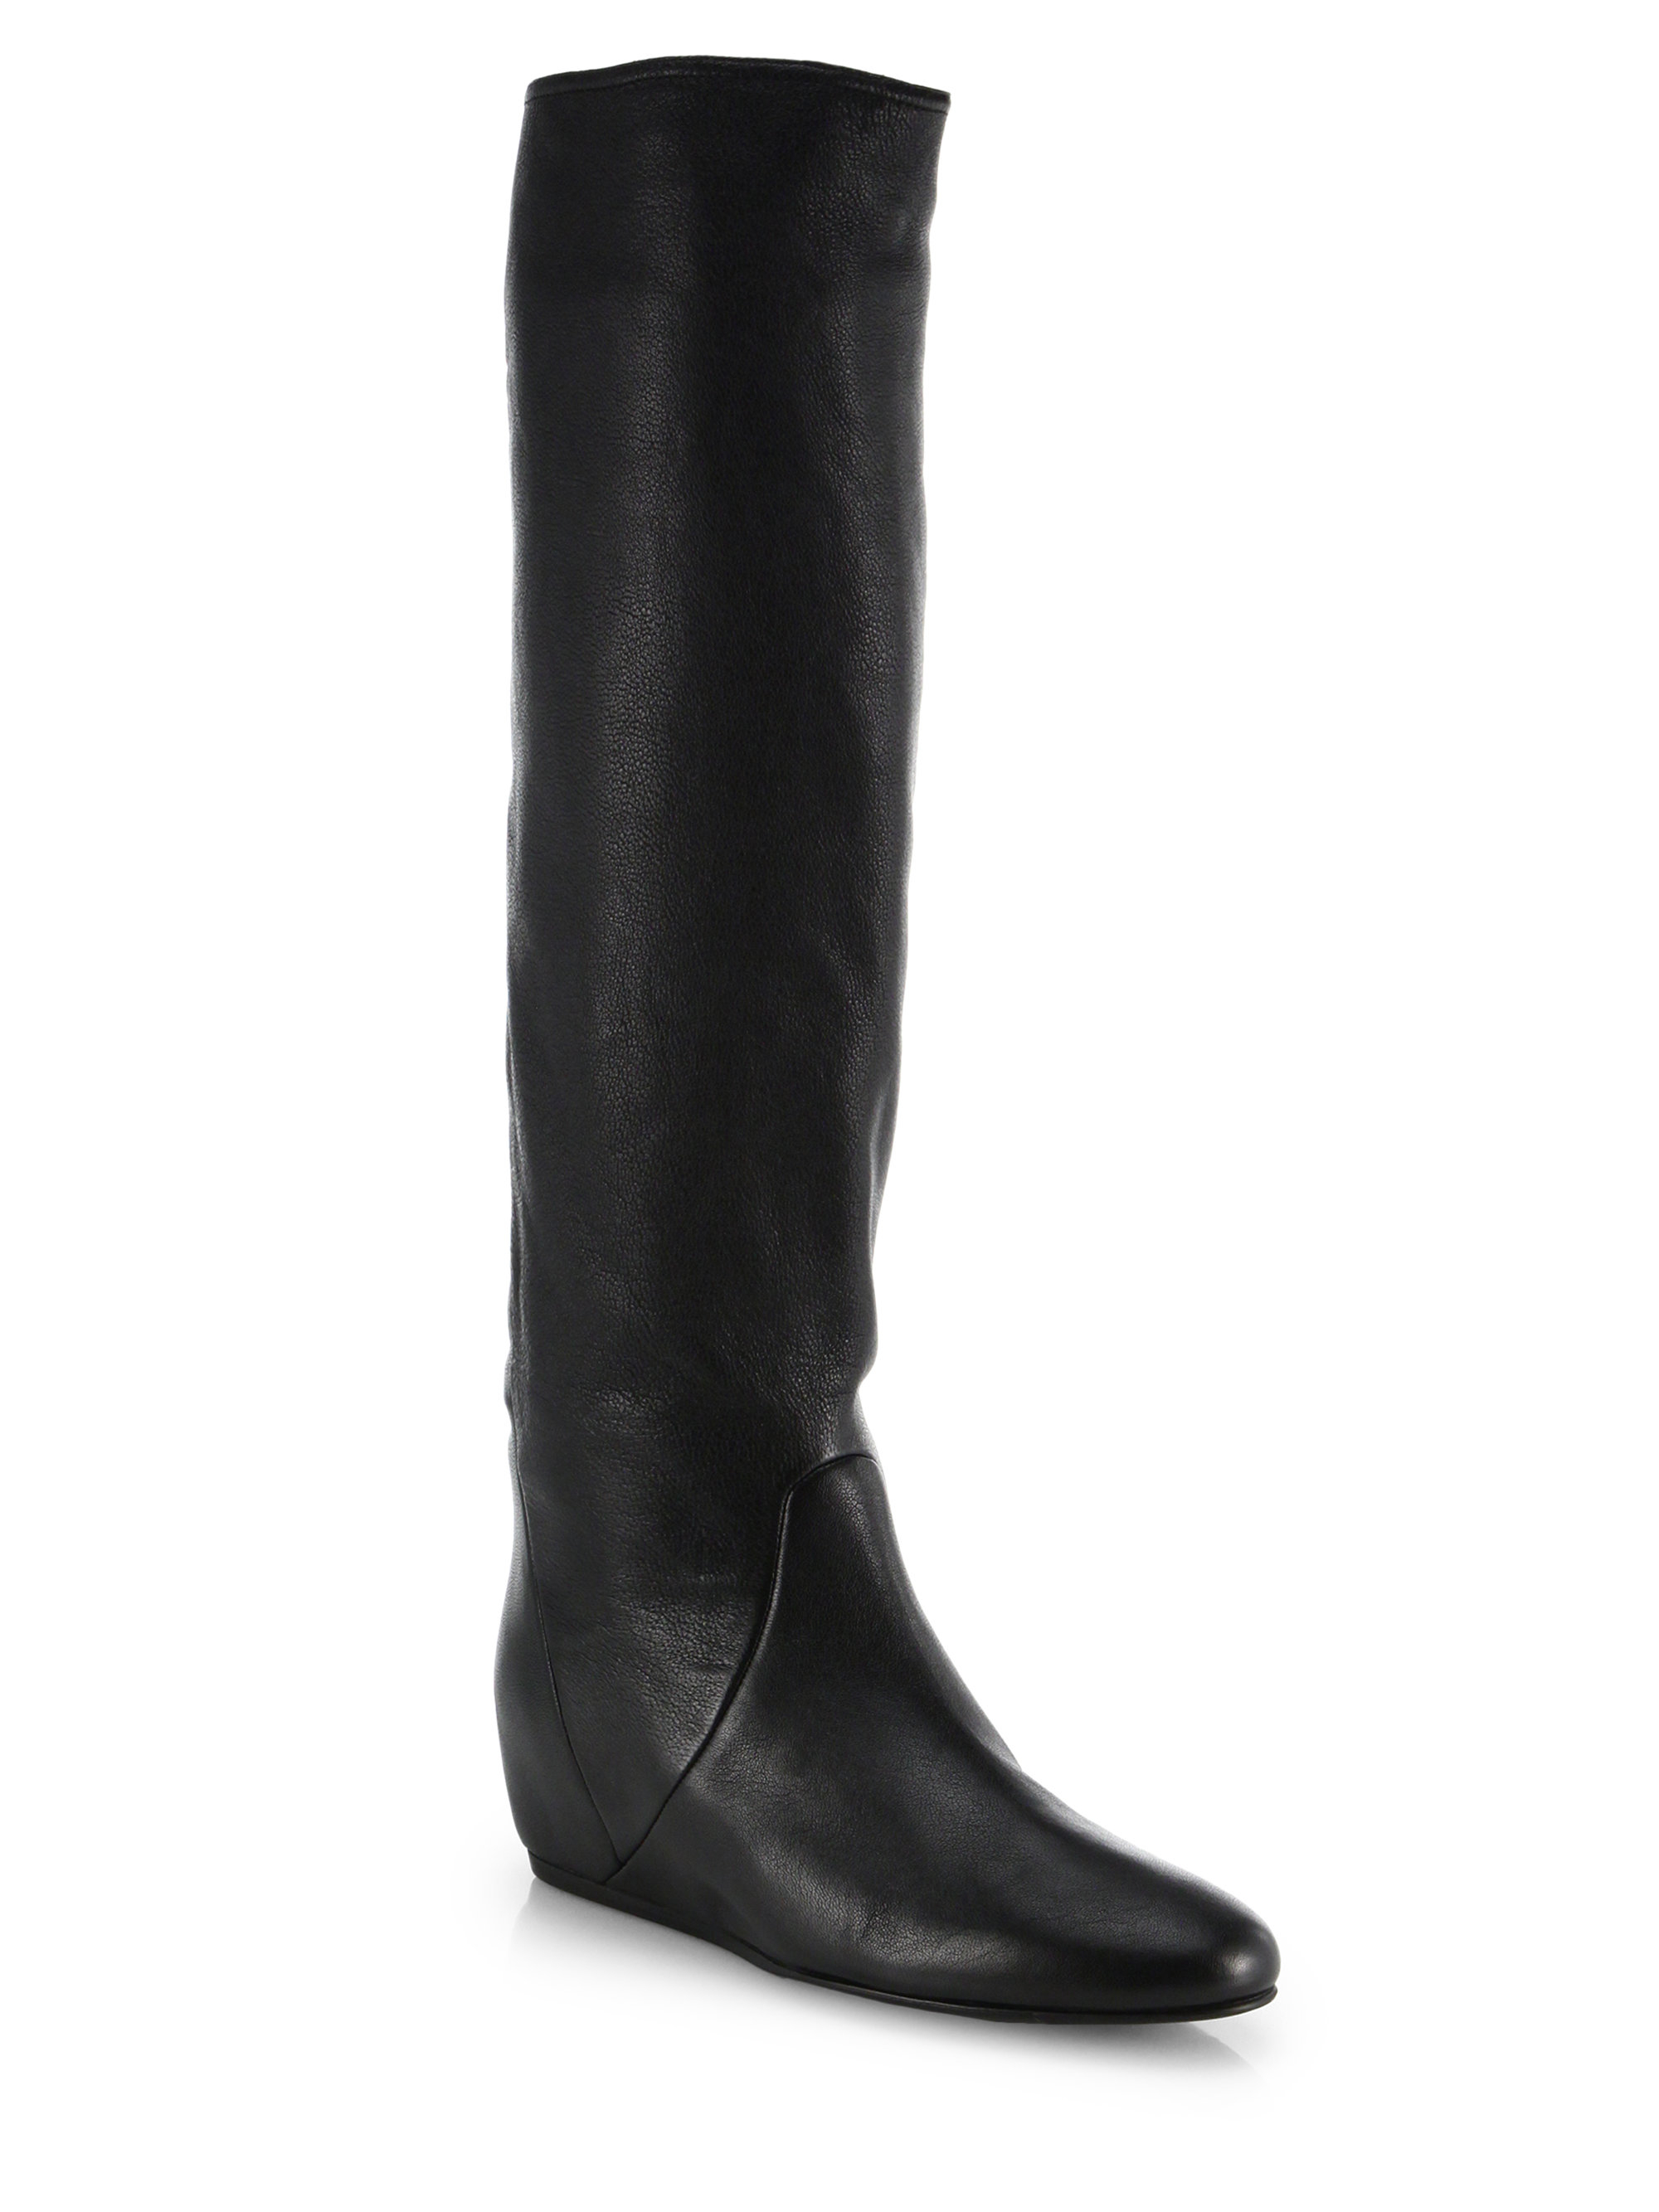 Lyst Lanvin Hidden Wedge Leather Knee High Boots In Black